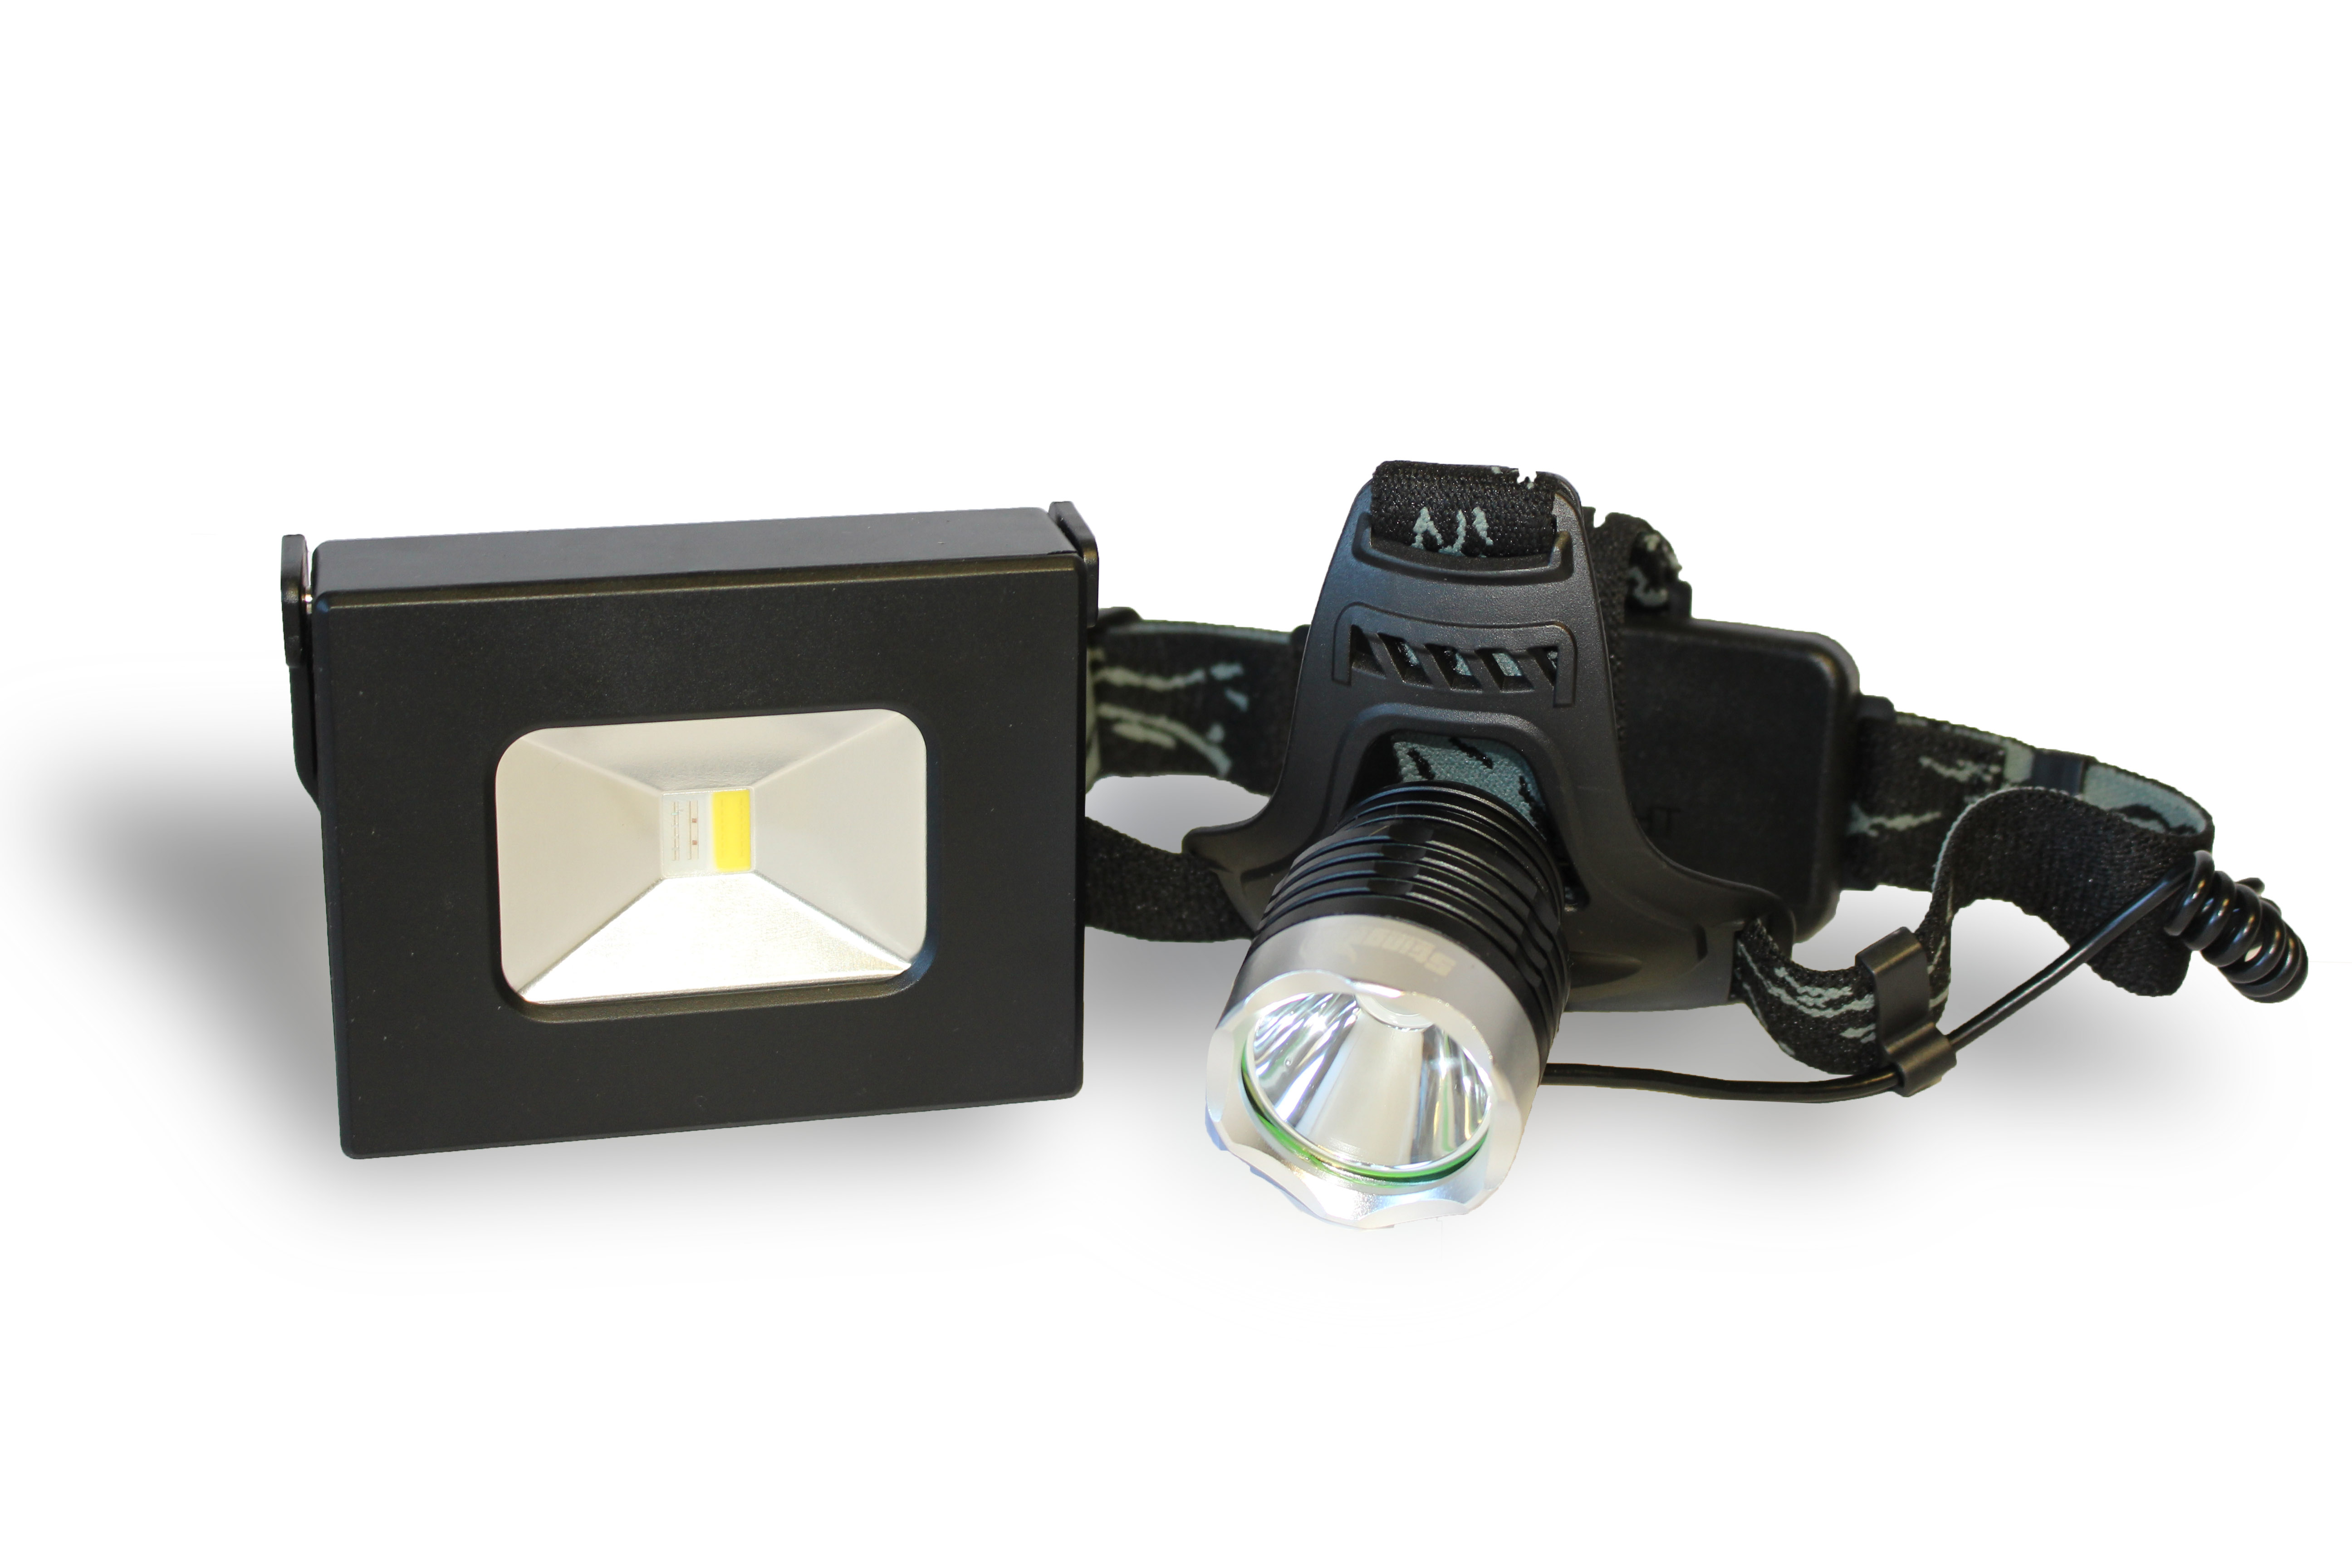 Headlamp Flashlight Combo Jointer Cool Gadgets Online